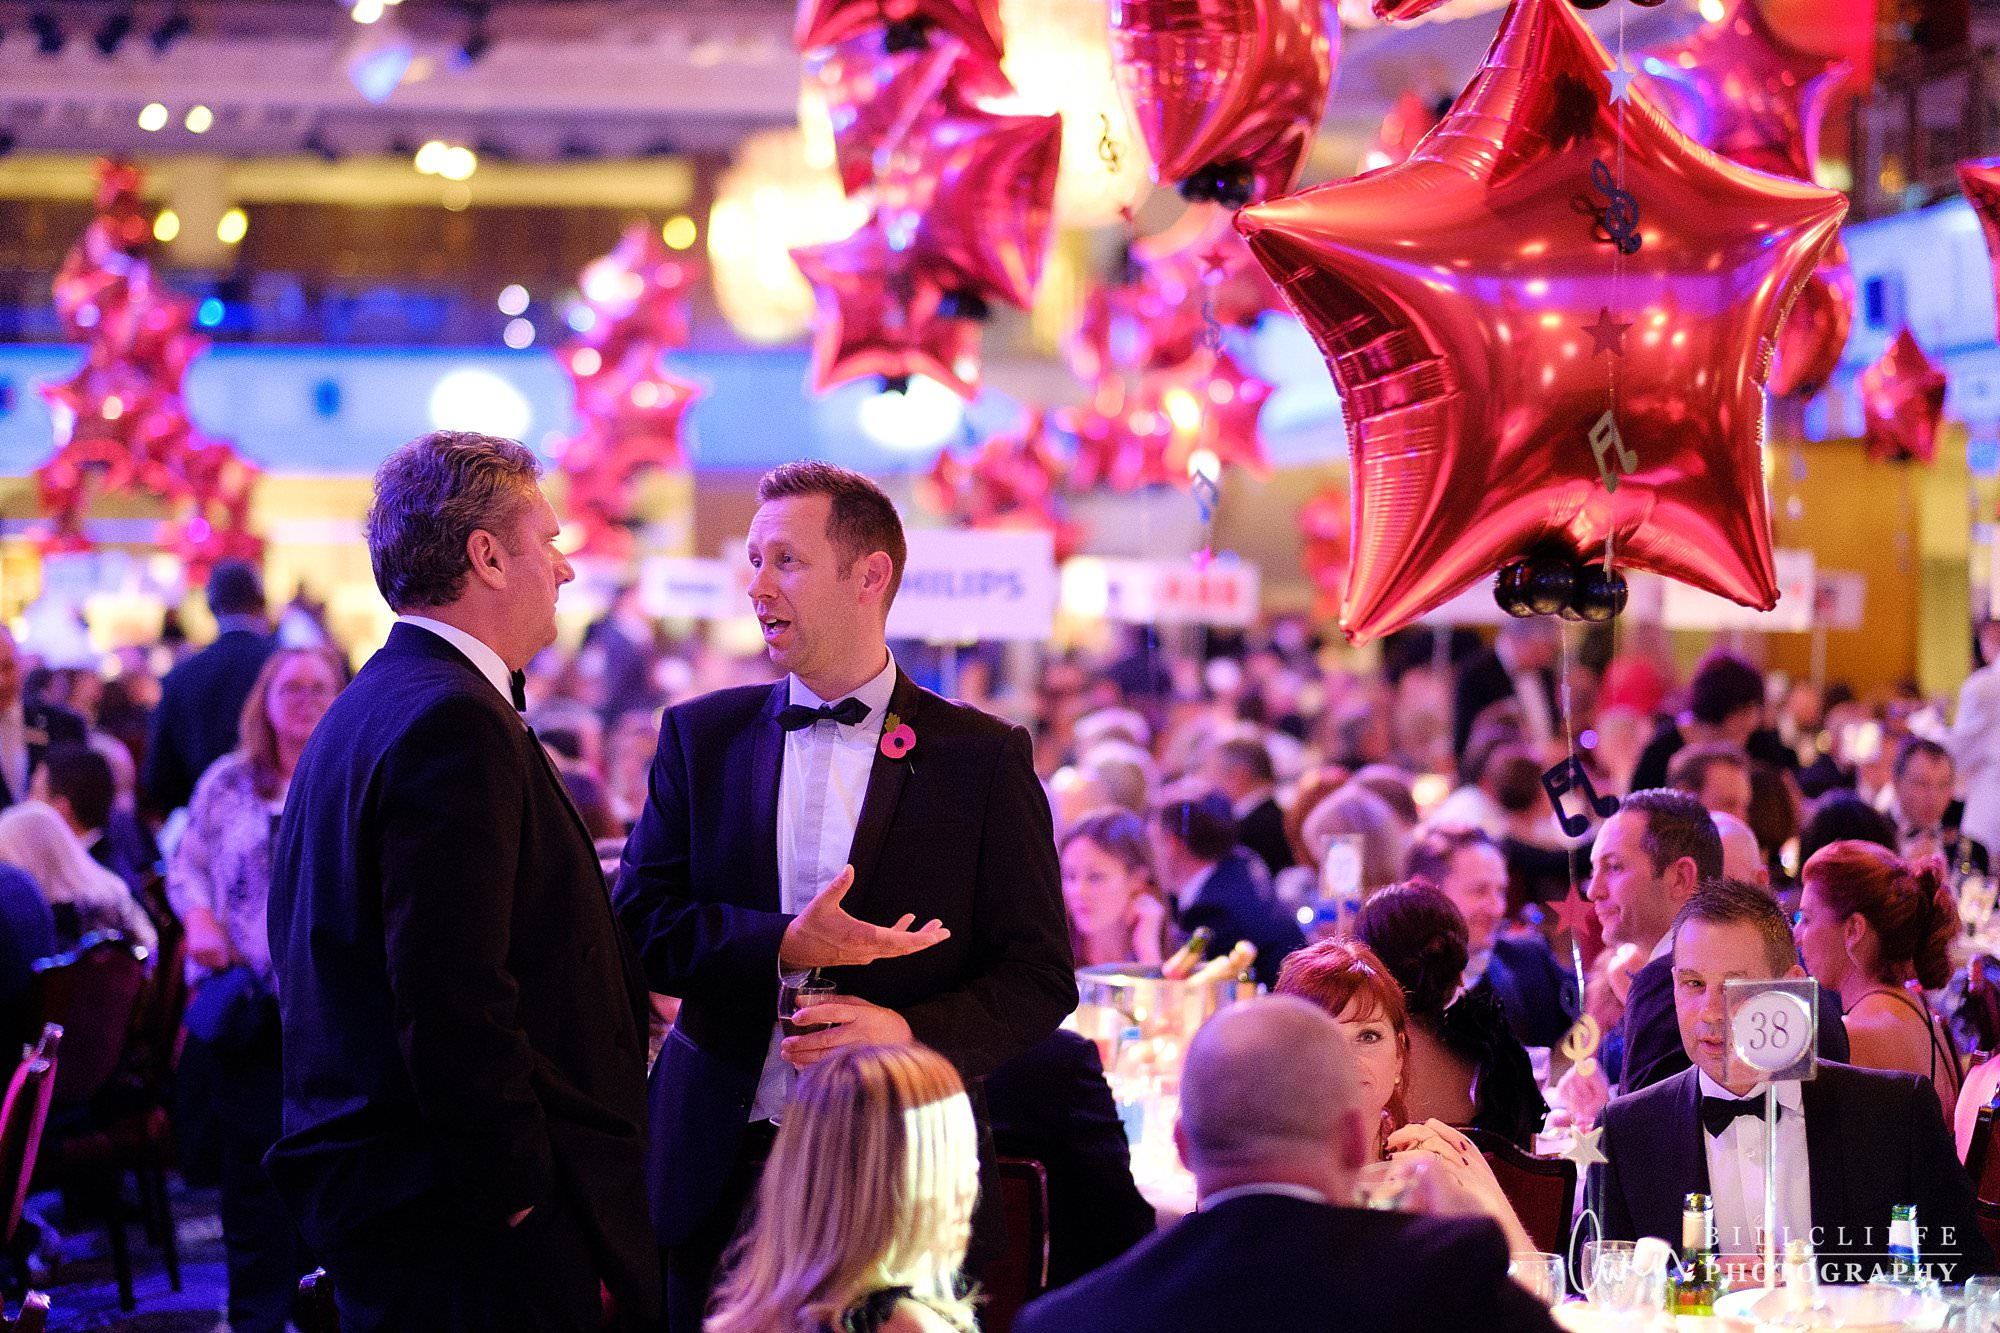 london event photographer park lane pb 016 - A Luxury Ball at Grosvenor House Park Lane